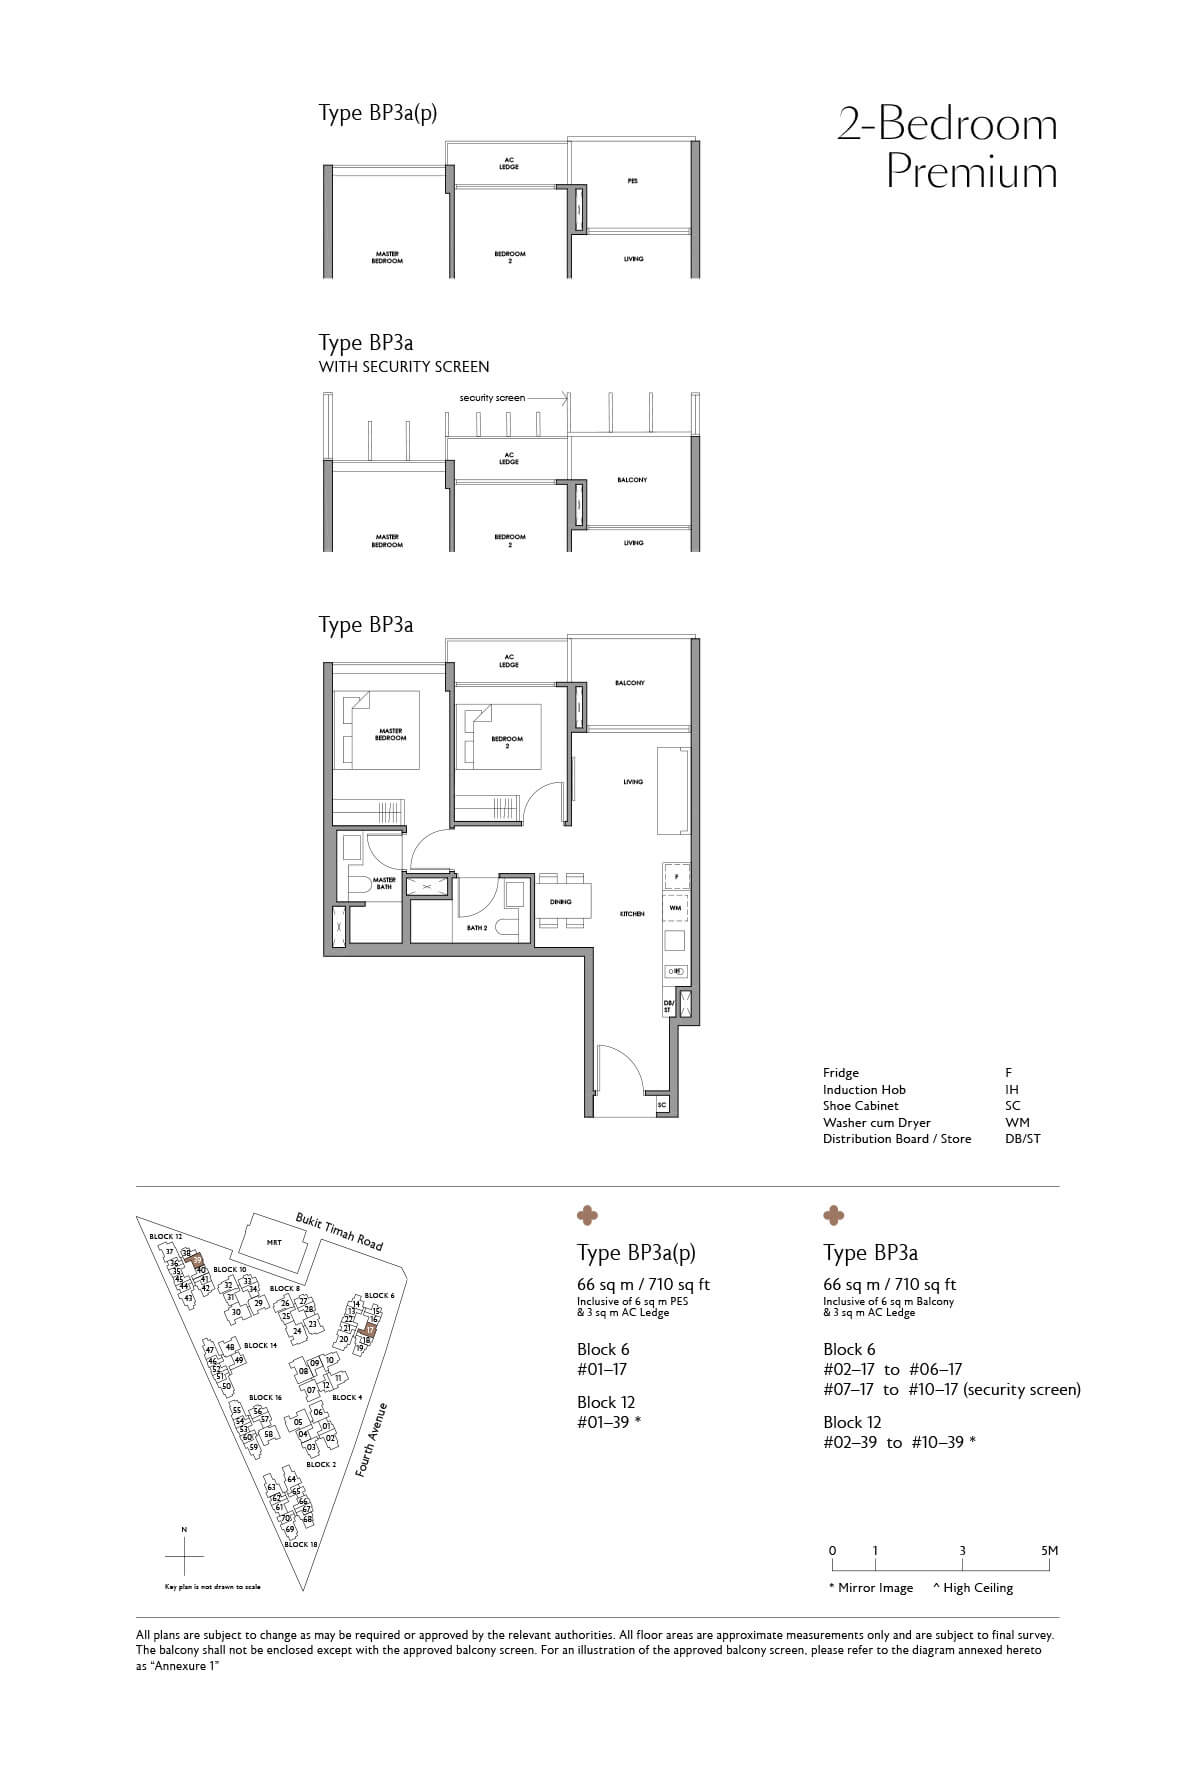 Fourth Avenue Residences Floor Plan 2 Bedroom Premium Type BP3a